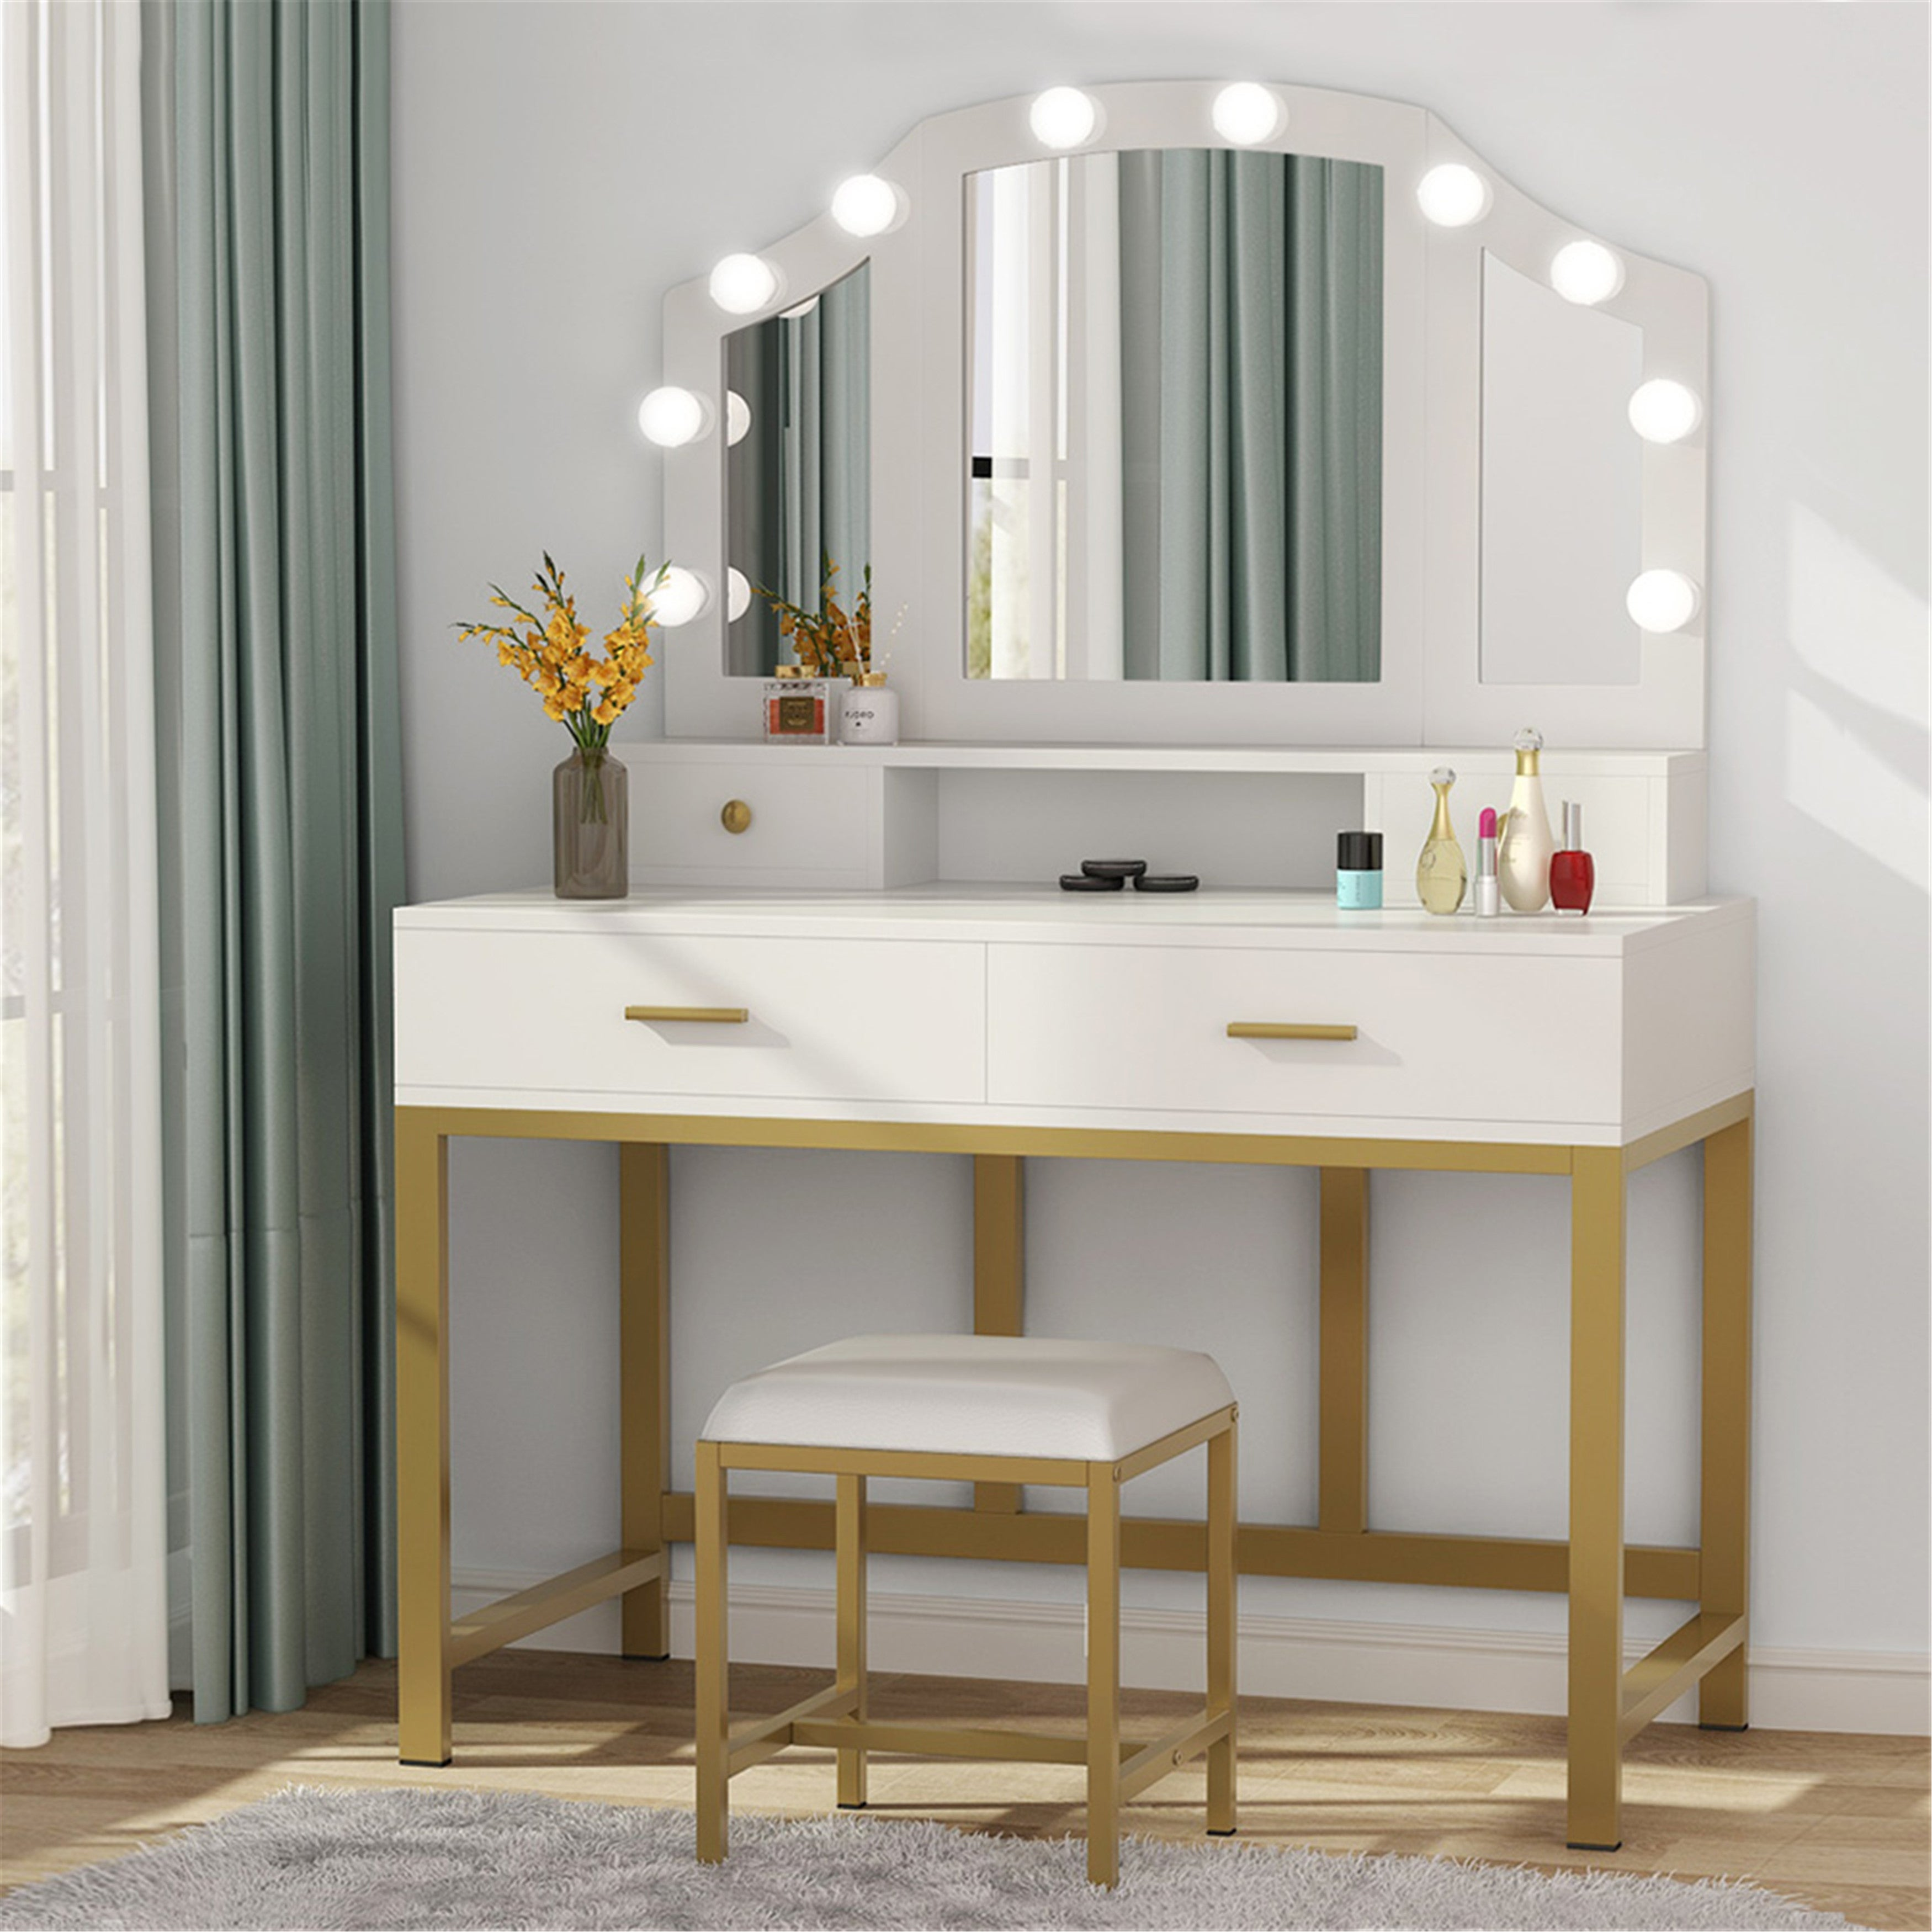 47 Large Vanity Set With Tri Folding Lighted Mirror And 2 Large Drawers 2 Small Drawers White Gold Overstock 31857053